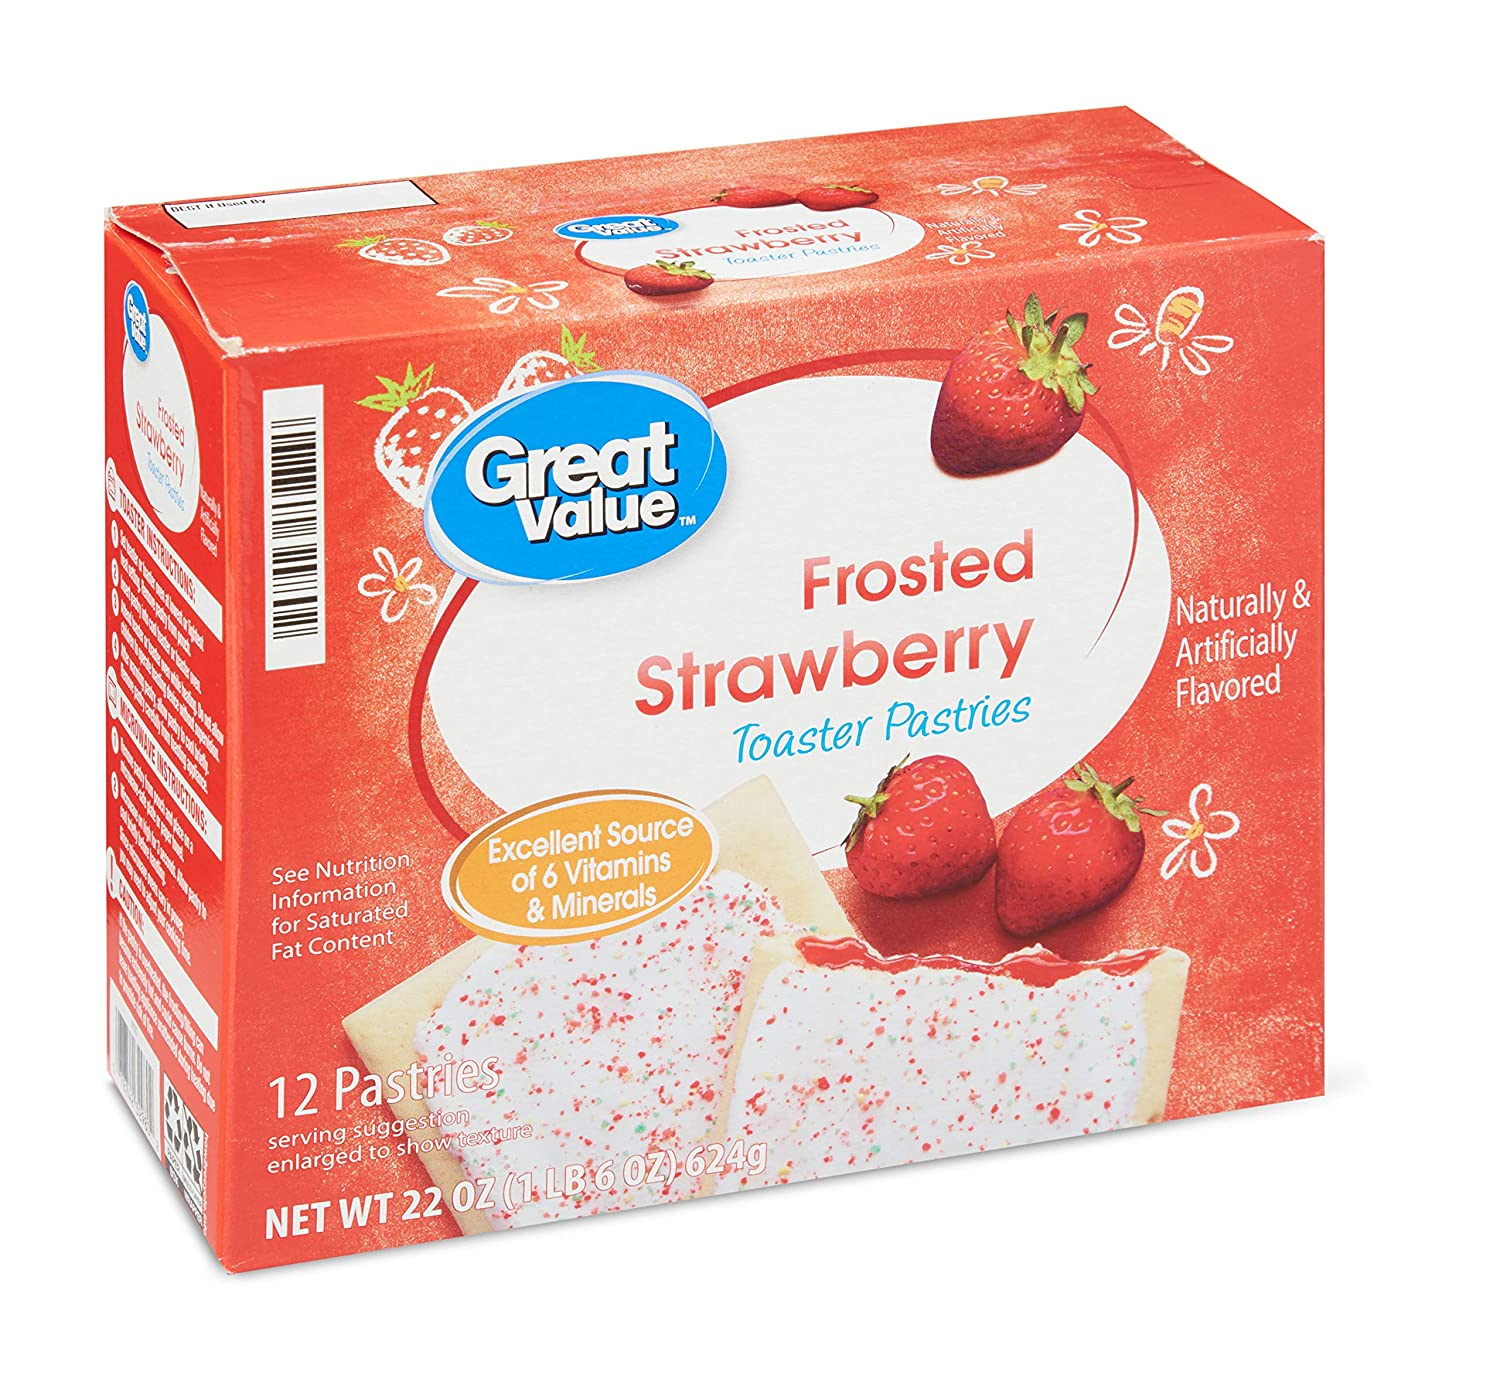 Great Value Frosted Toaster Pastries, 22 oz, 12 Count (Frosted Strawberry)